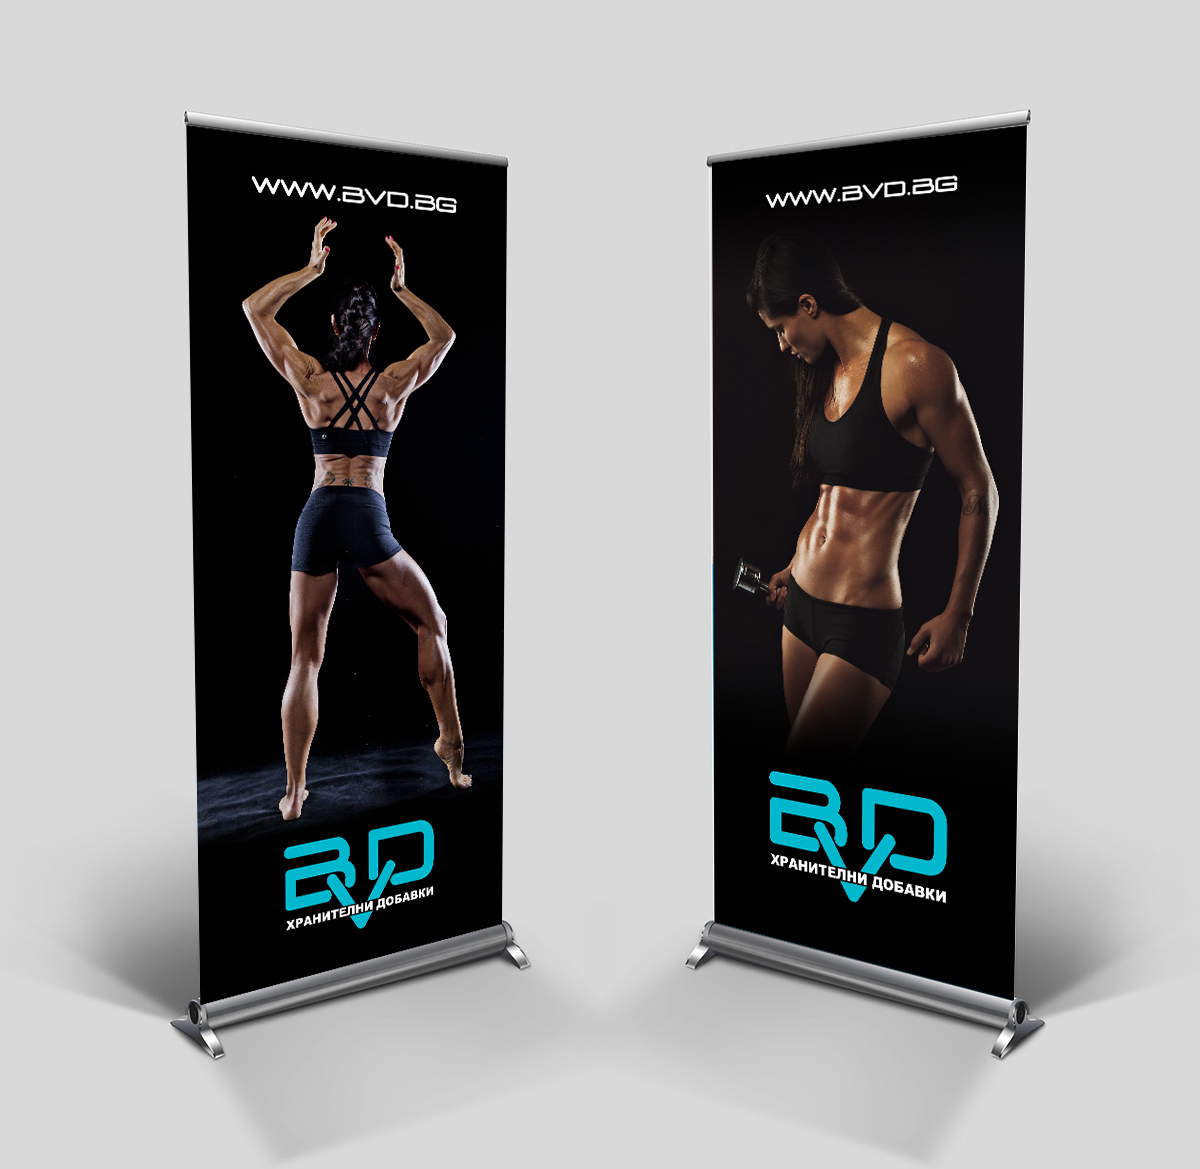 business-roll-up-banner-vol-01-1-1